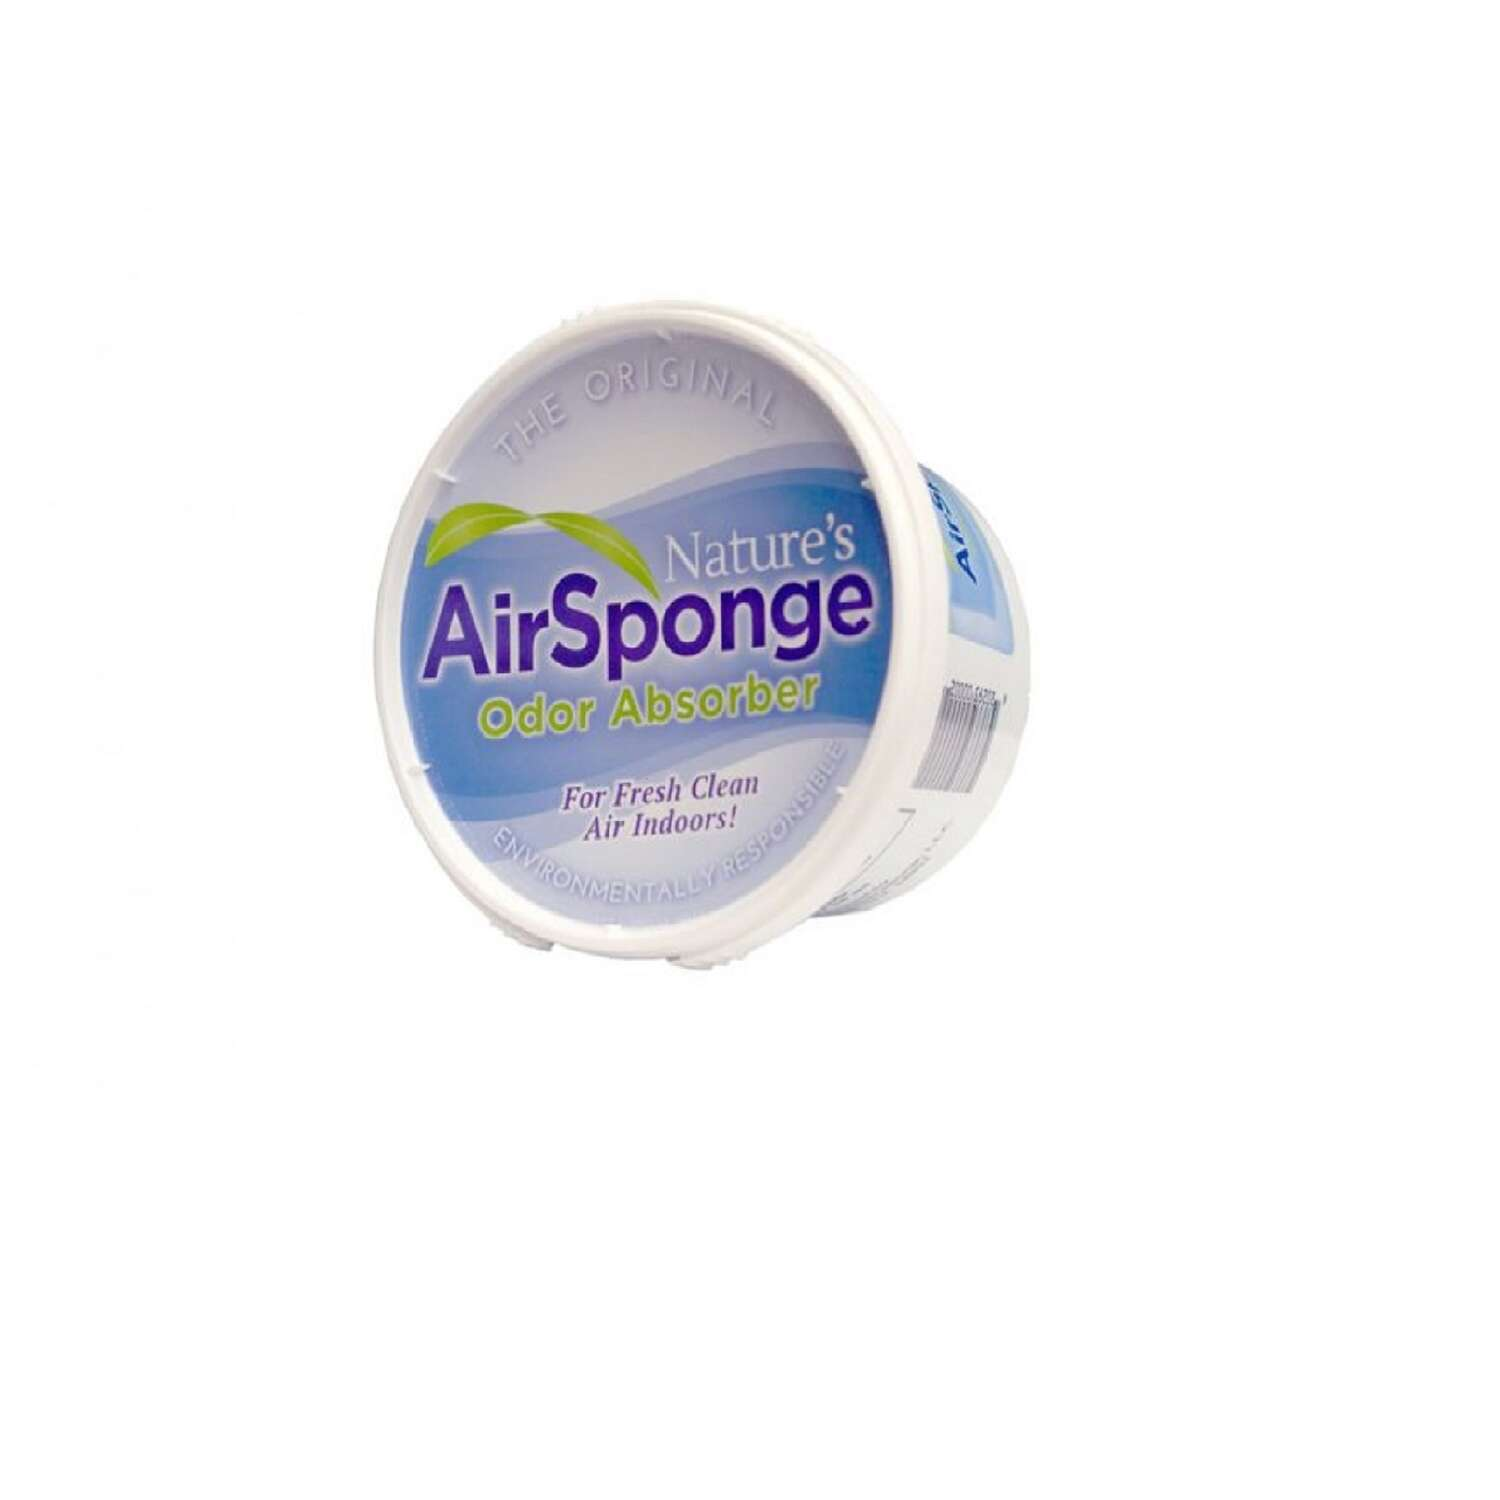 Nature's Air Sponge  No Scent Odor Absorber  1 lb. Solid